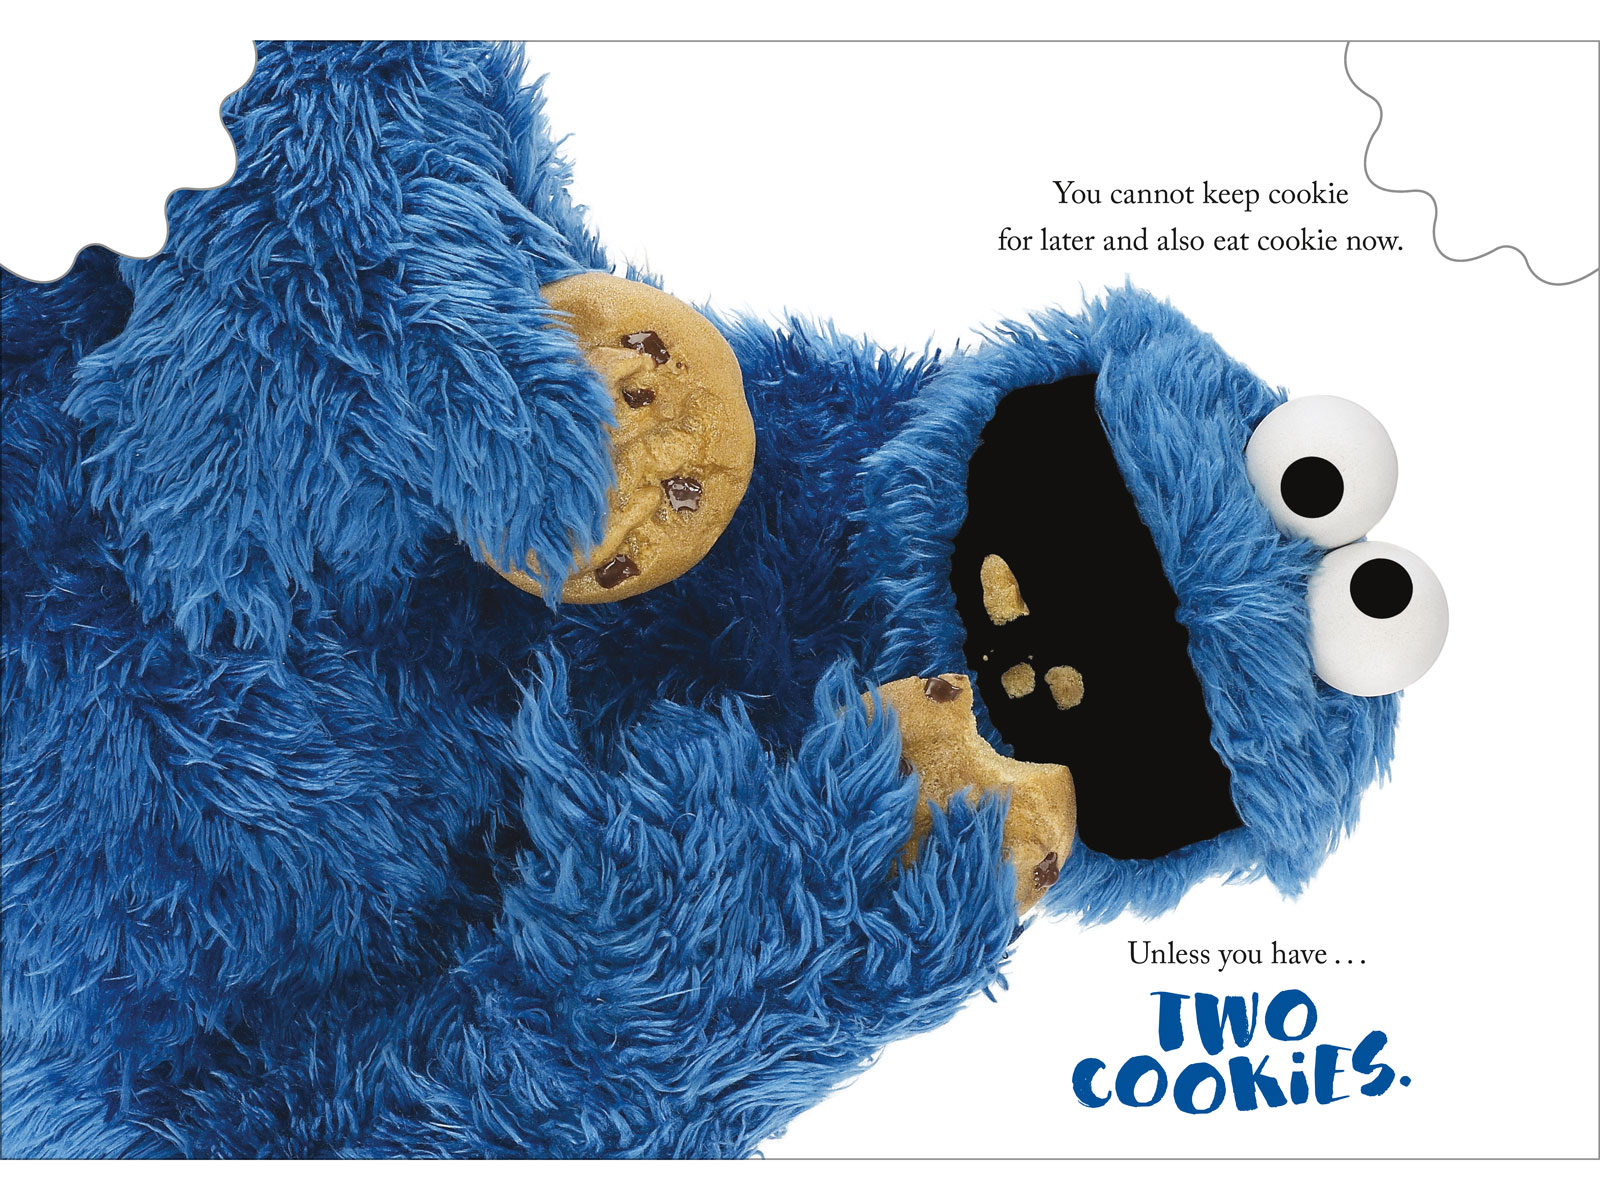 cookie-monster-book-image1-FT-BLOG0418.jpg